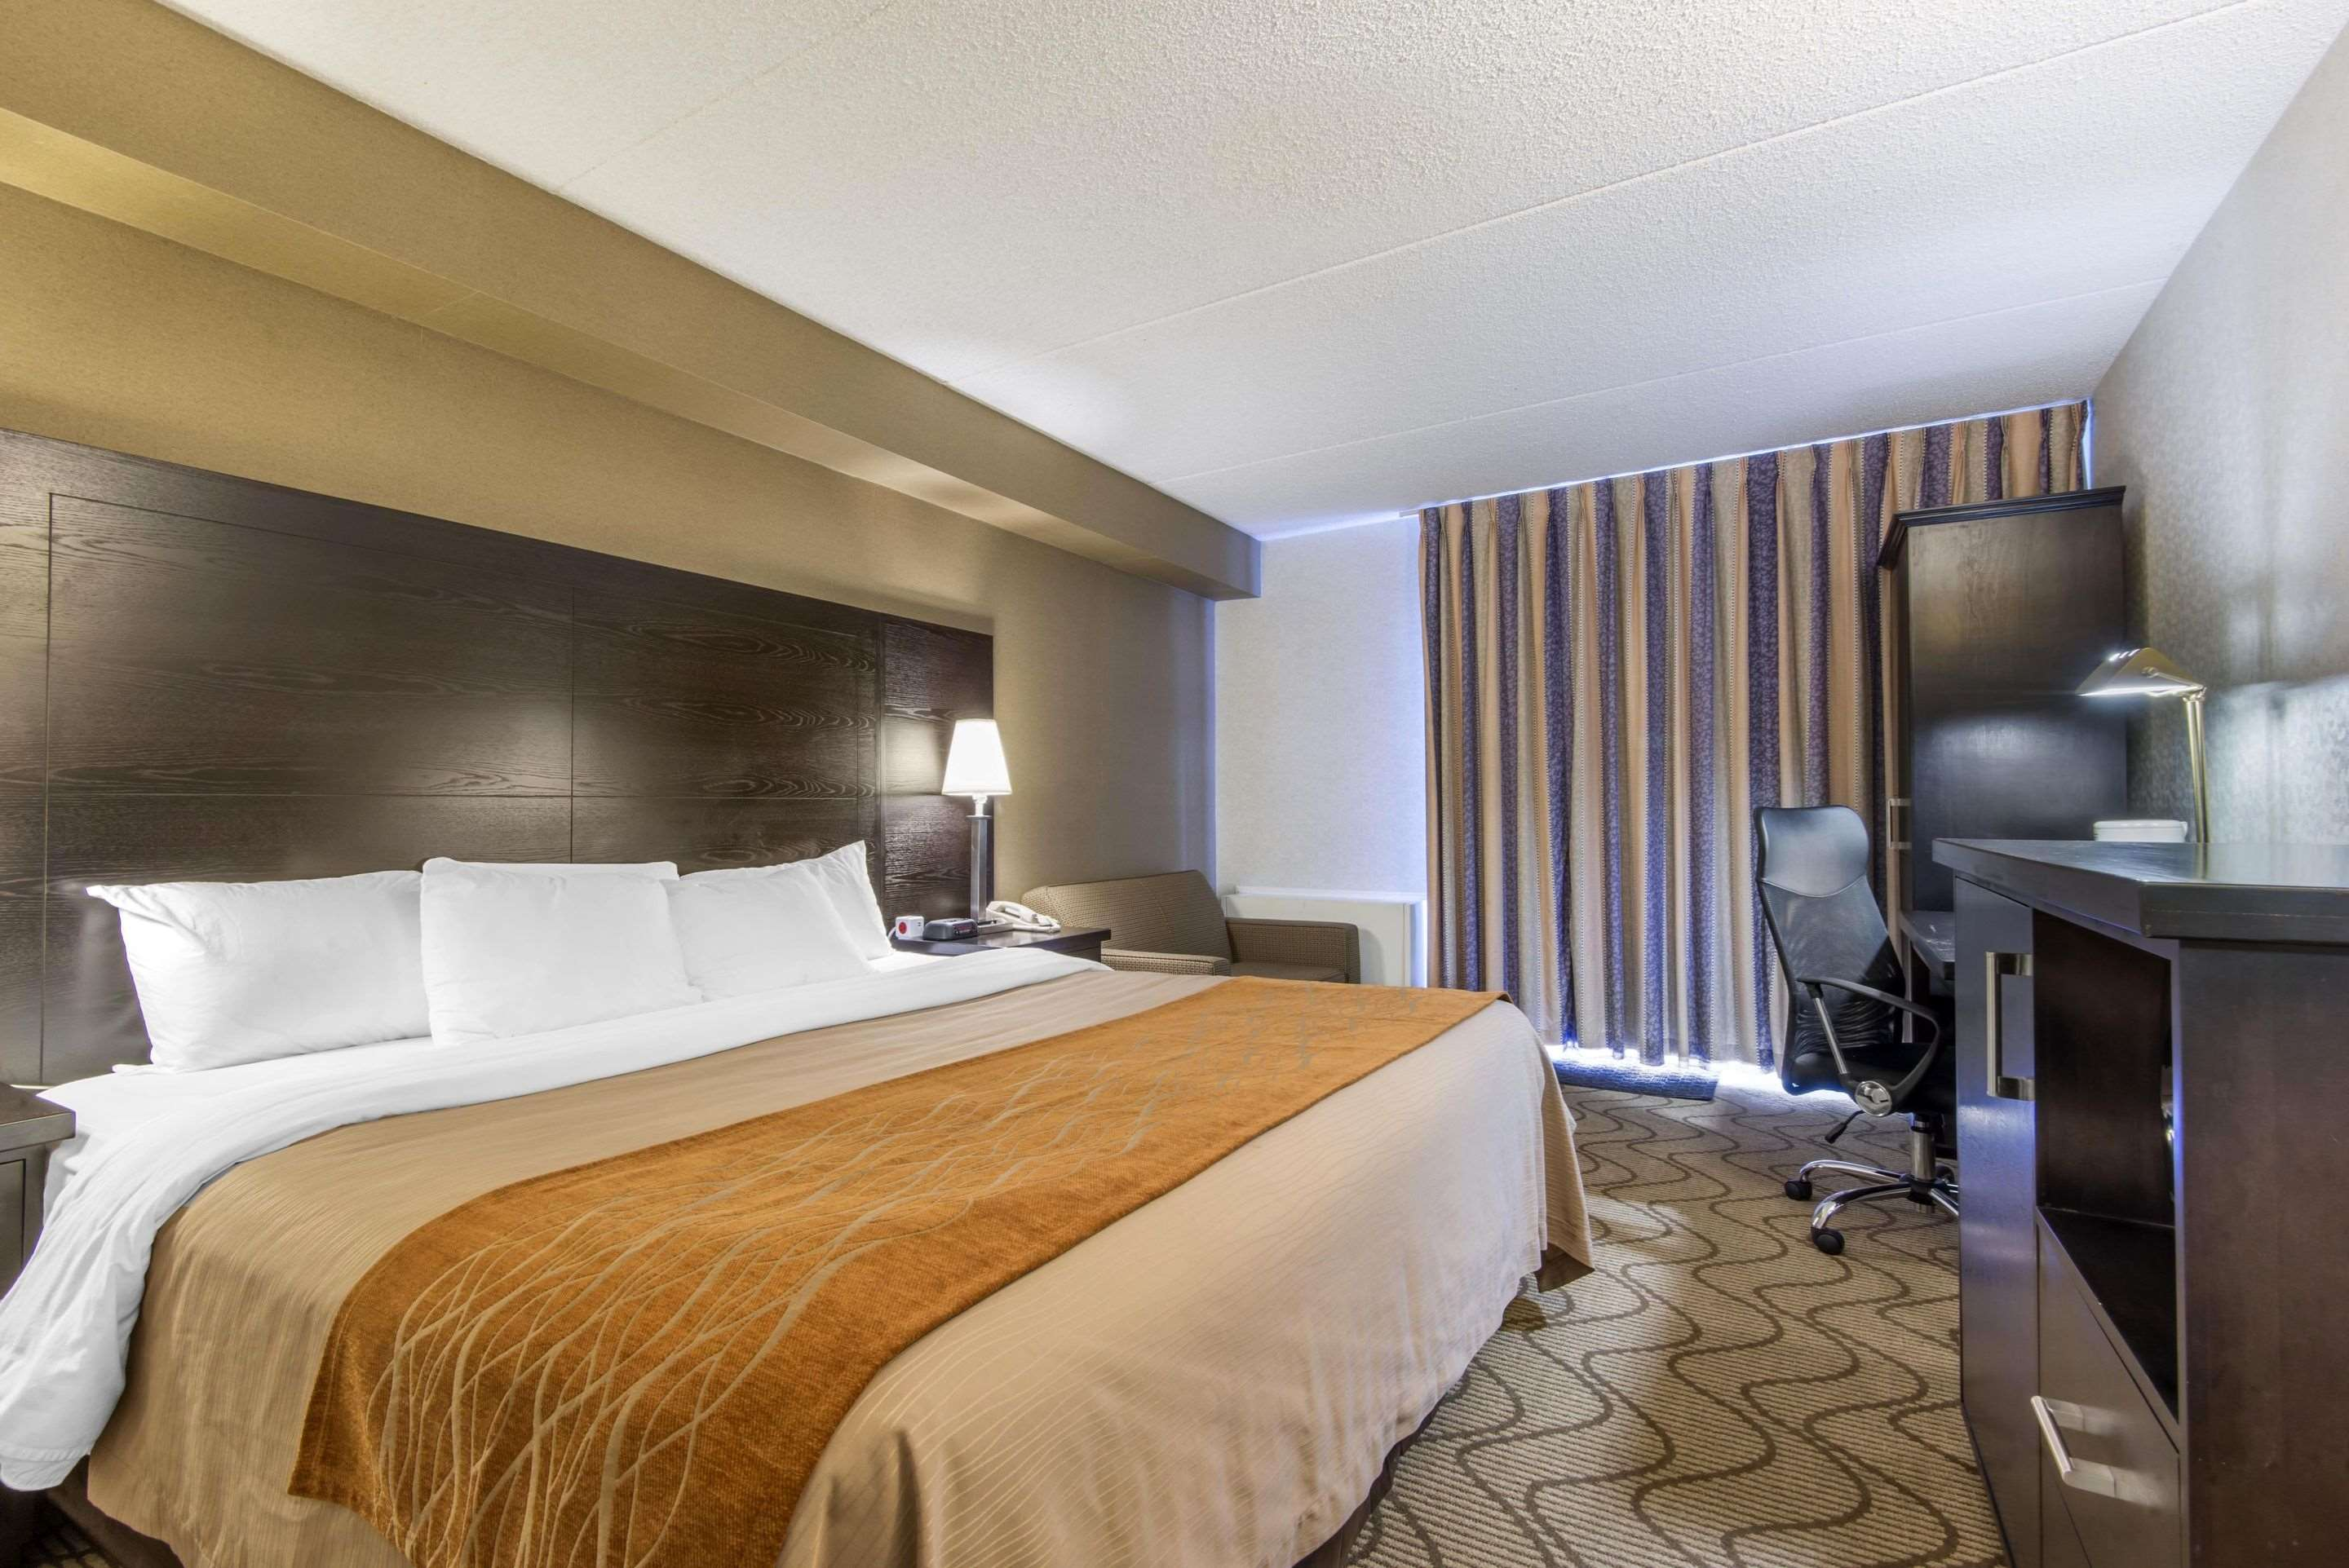 Comfort Inn in North Bay: Spacious guest room